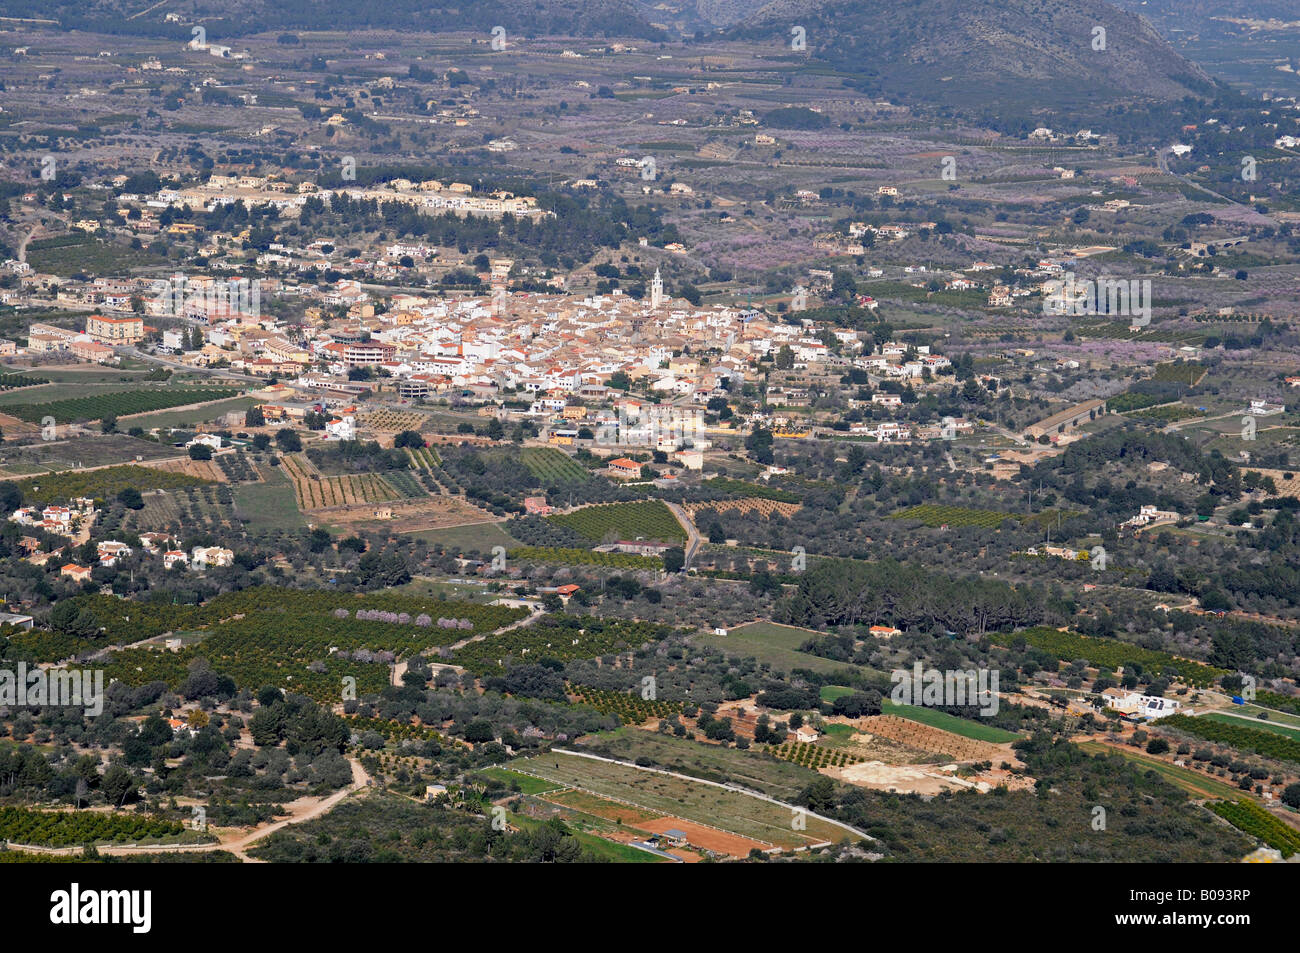 View of the village of Parcent, Coll de Rates, Tarbena, Alicante, Costa Blanca, Spain - Stock Image